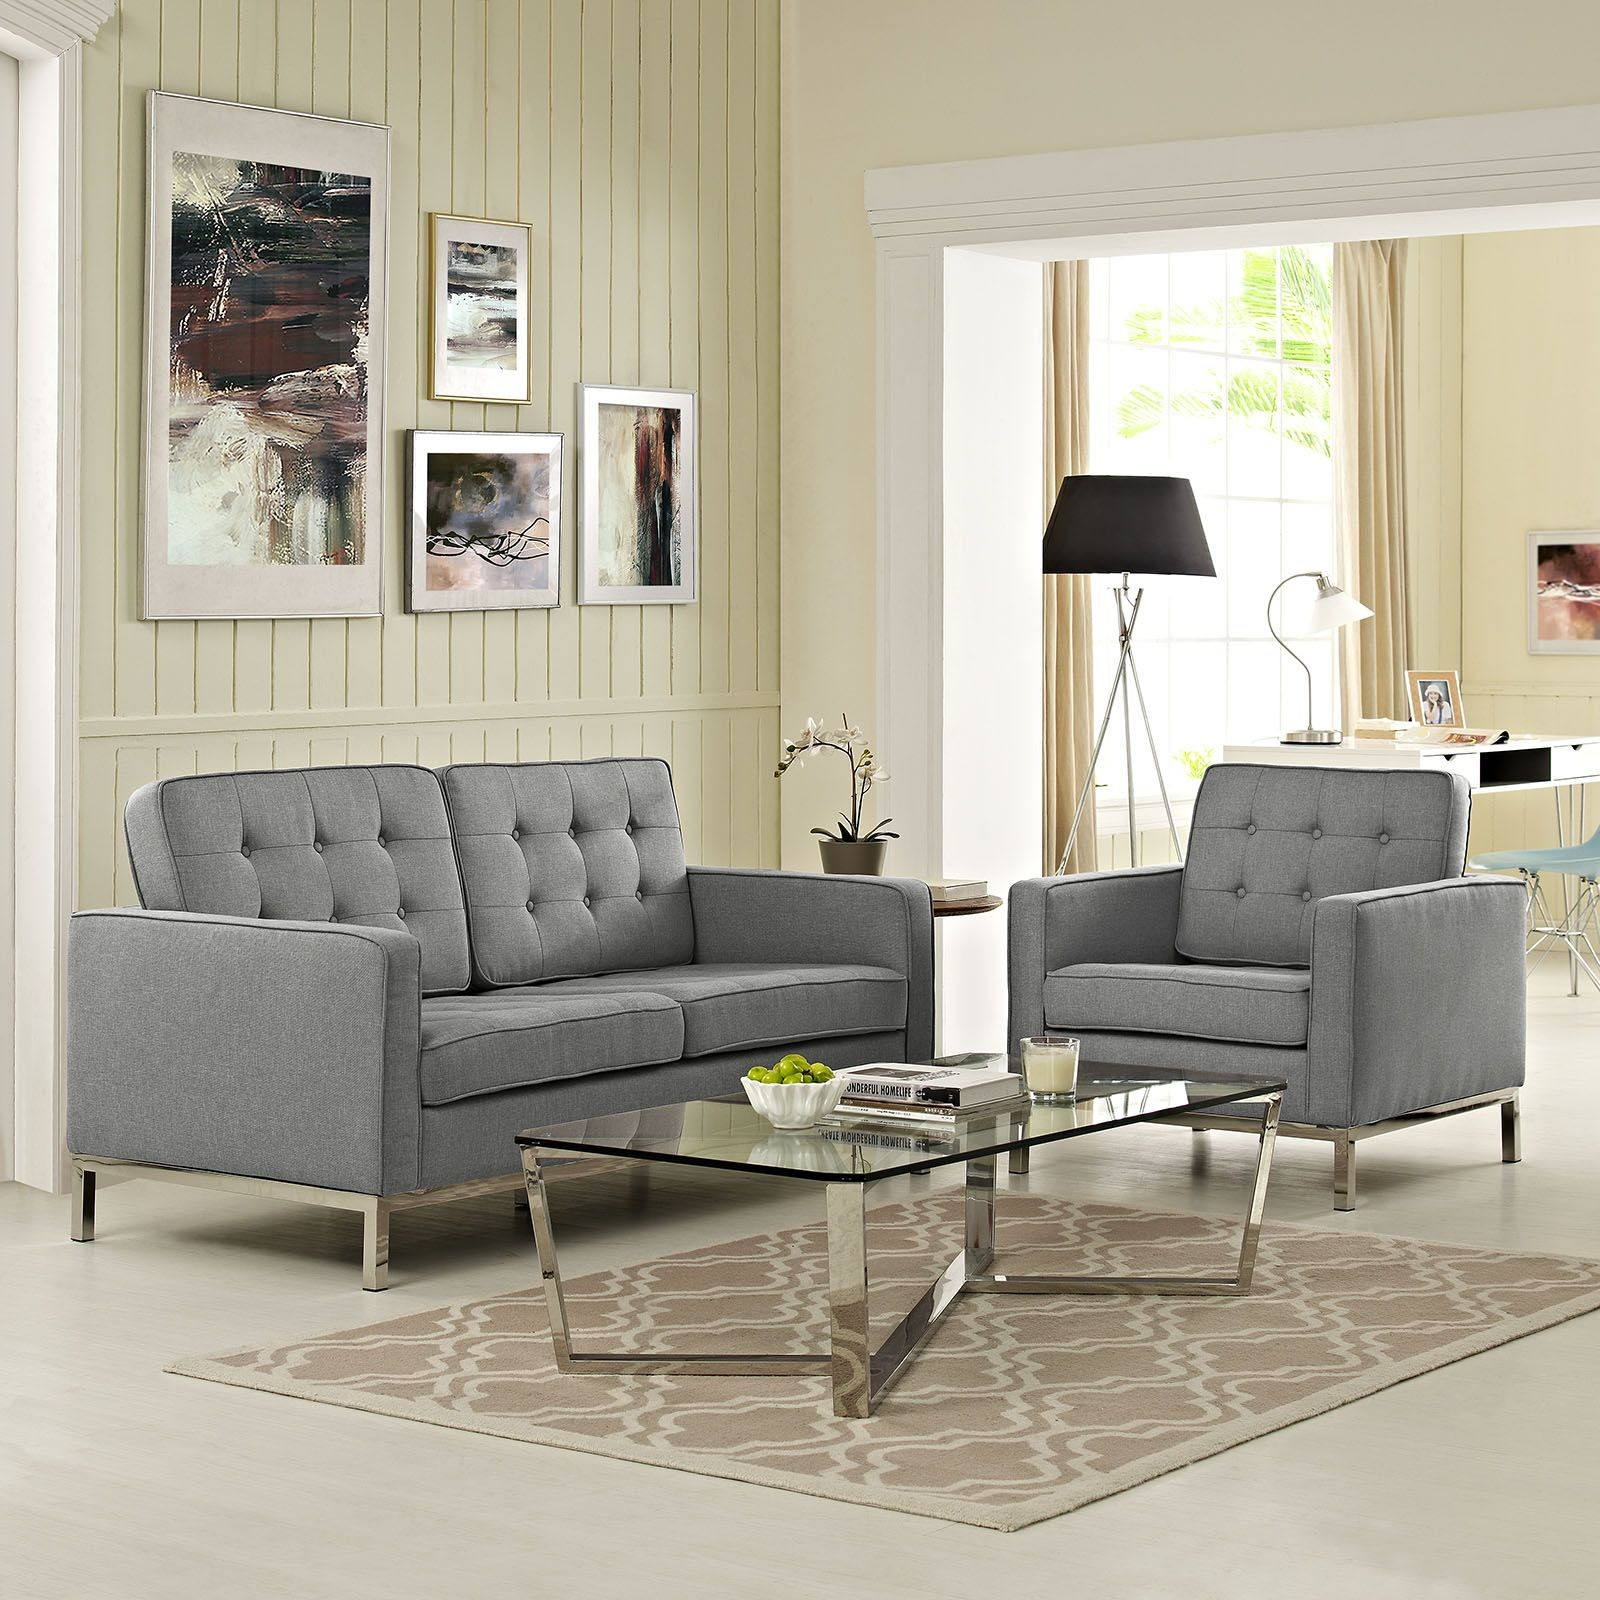 Loft light gray 2 piece upholstered living room set from renegade coleman furniture for 8 piece living room set